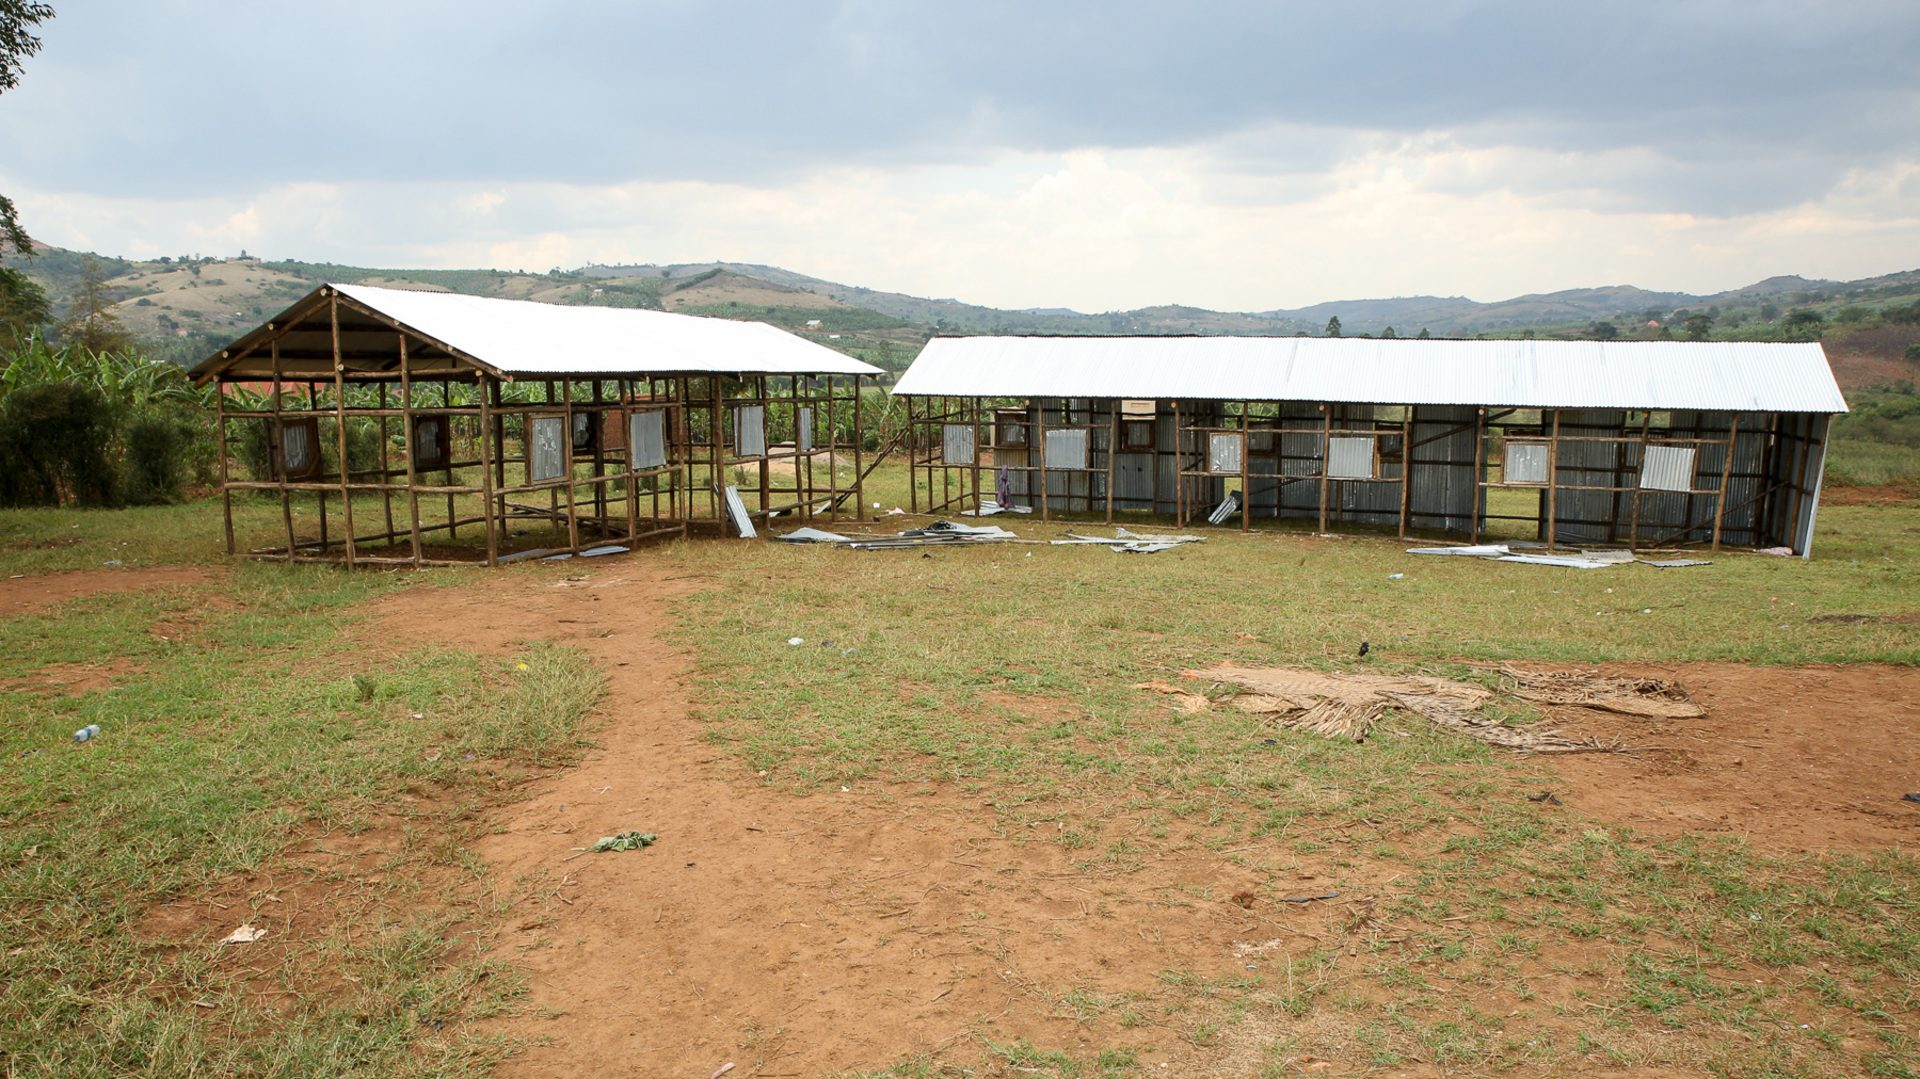 Temporary kindergarten structures